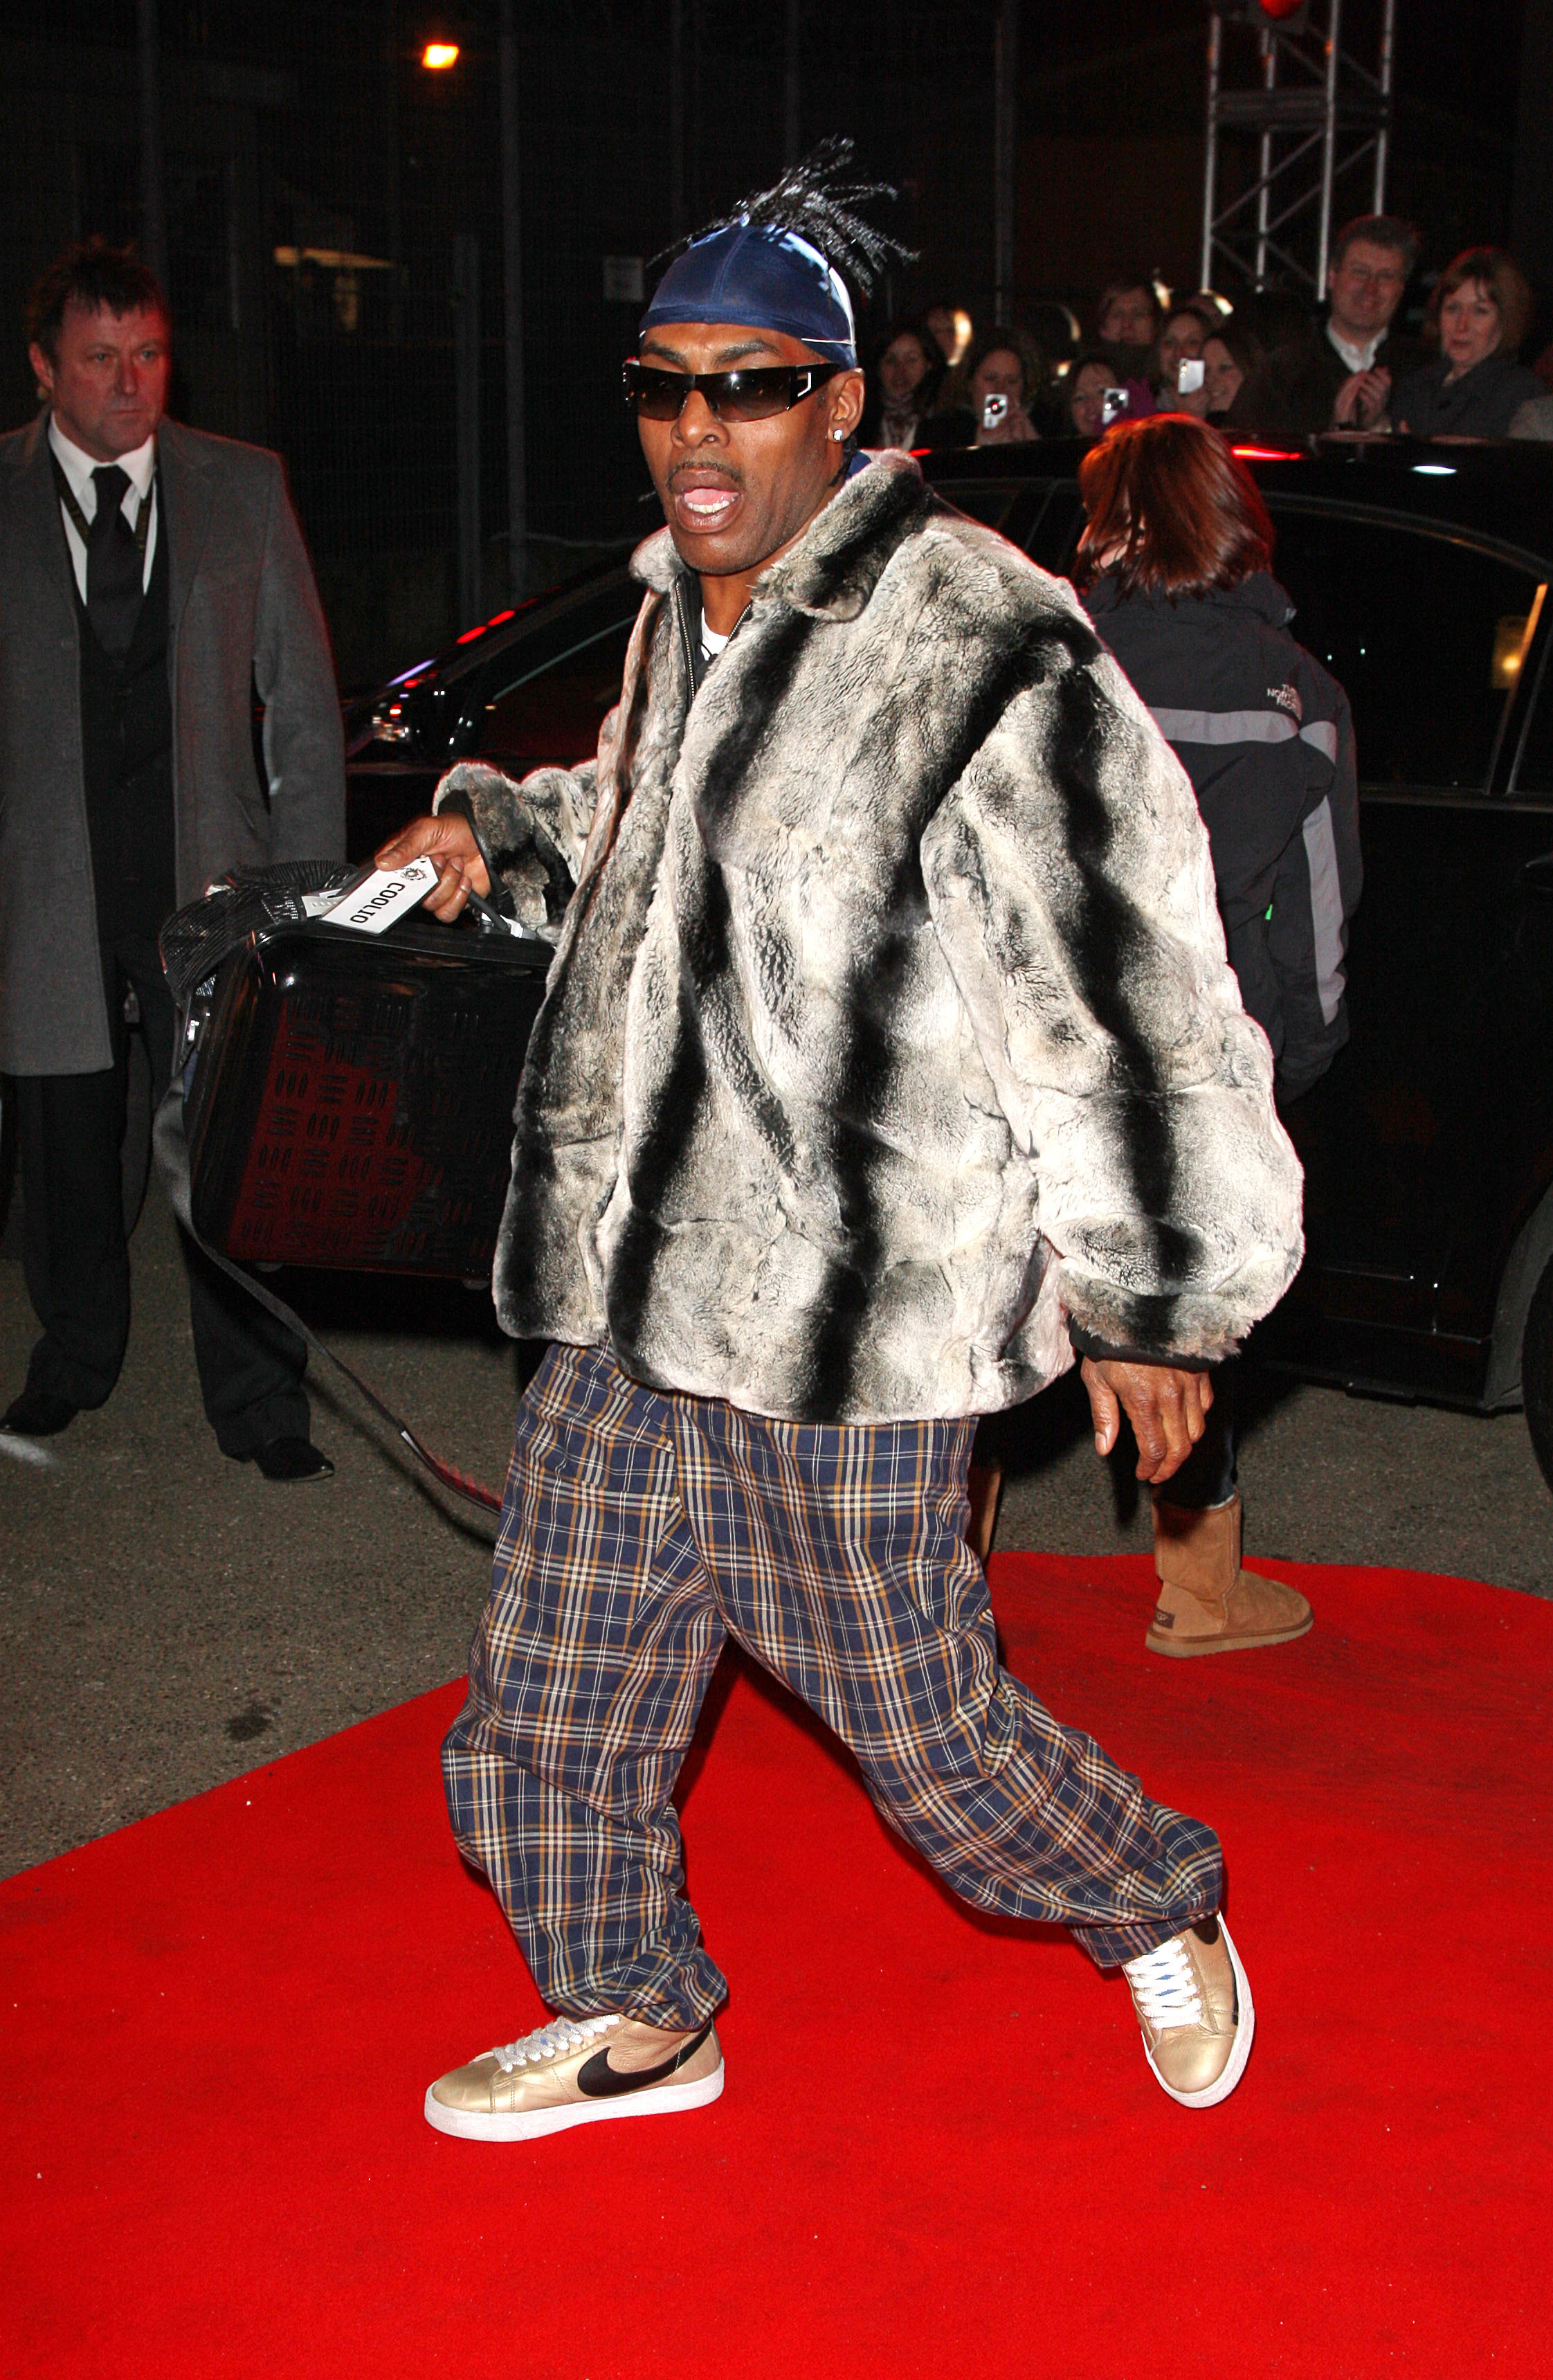 Coolio to appear on Celebrity Big Brother? - Digital Spy